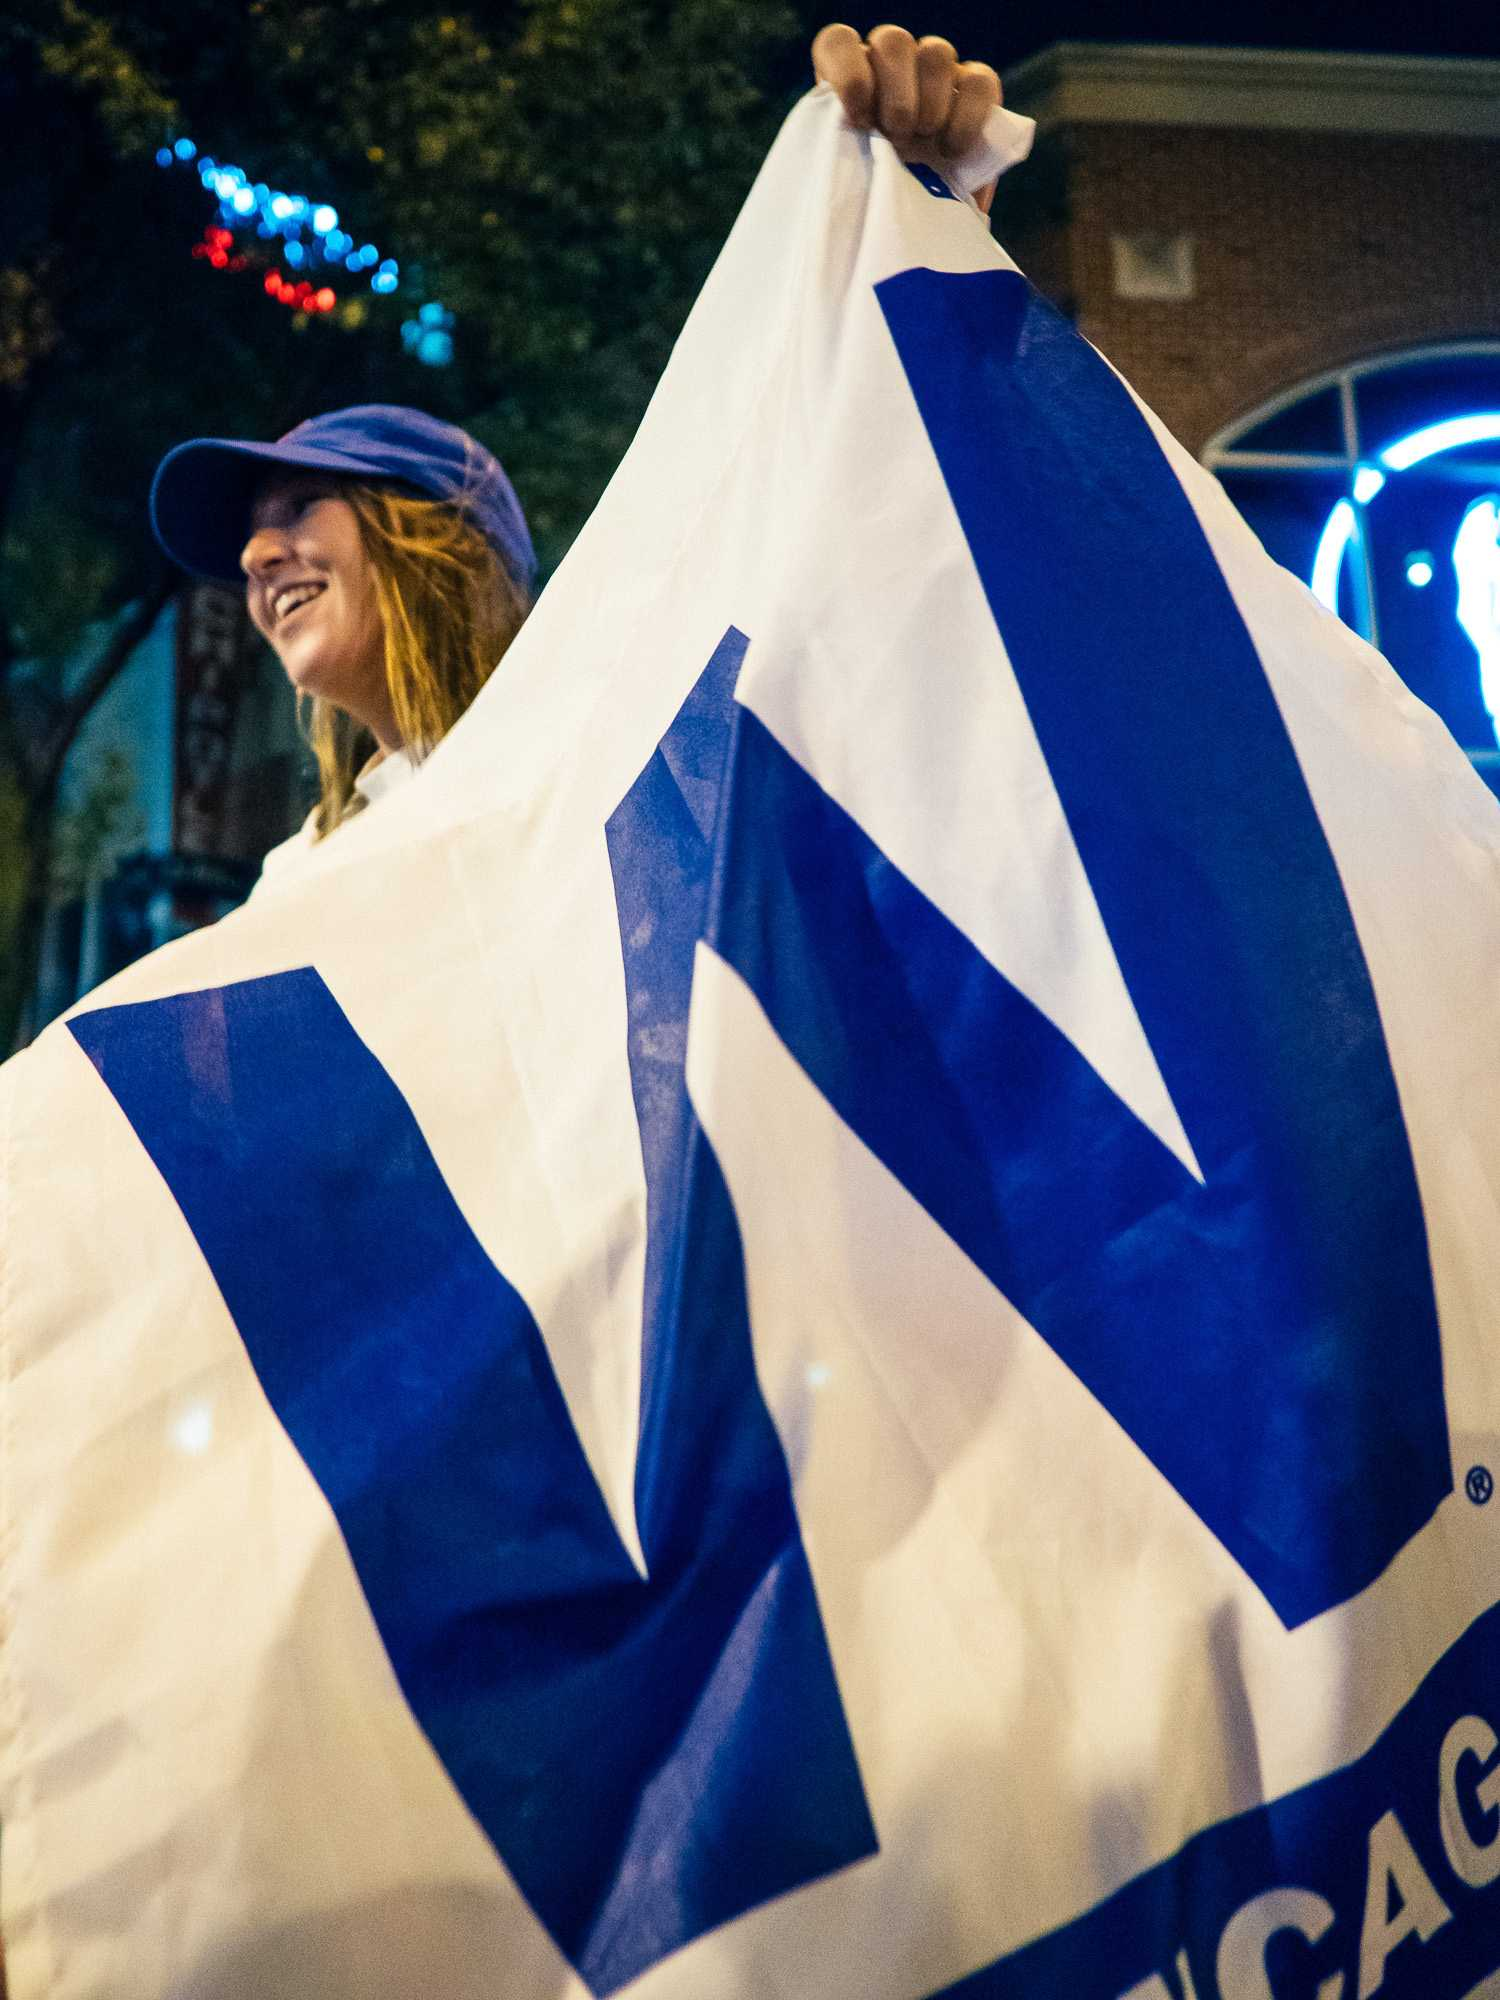 Students celebrate after the Cubs win Game 7 of the 2016 World Series against the Cleveland Indians on Wednesday on Green St.